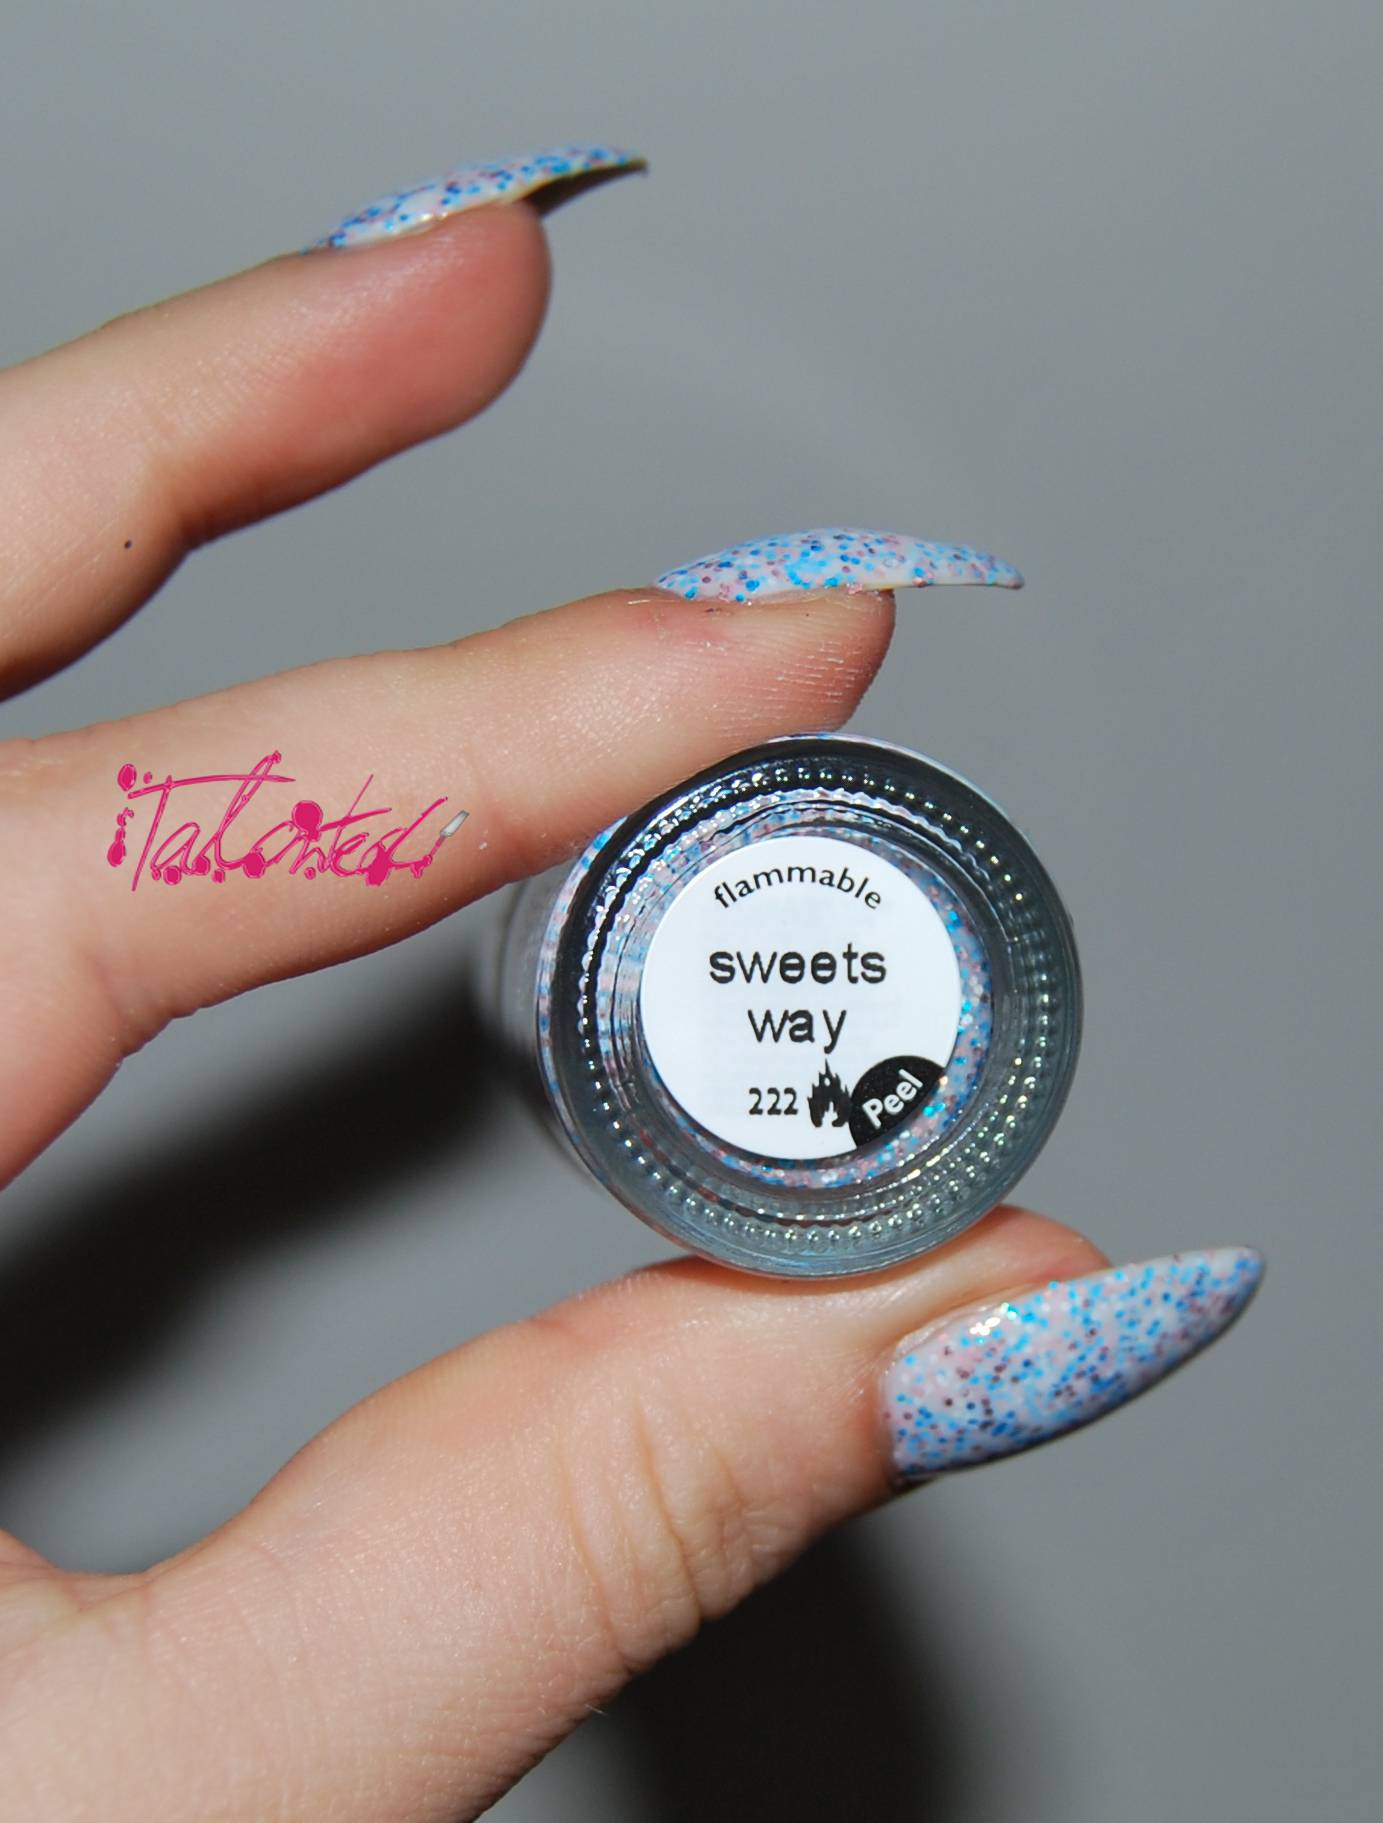 Nails Inc Sweets Way Review